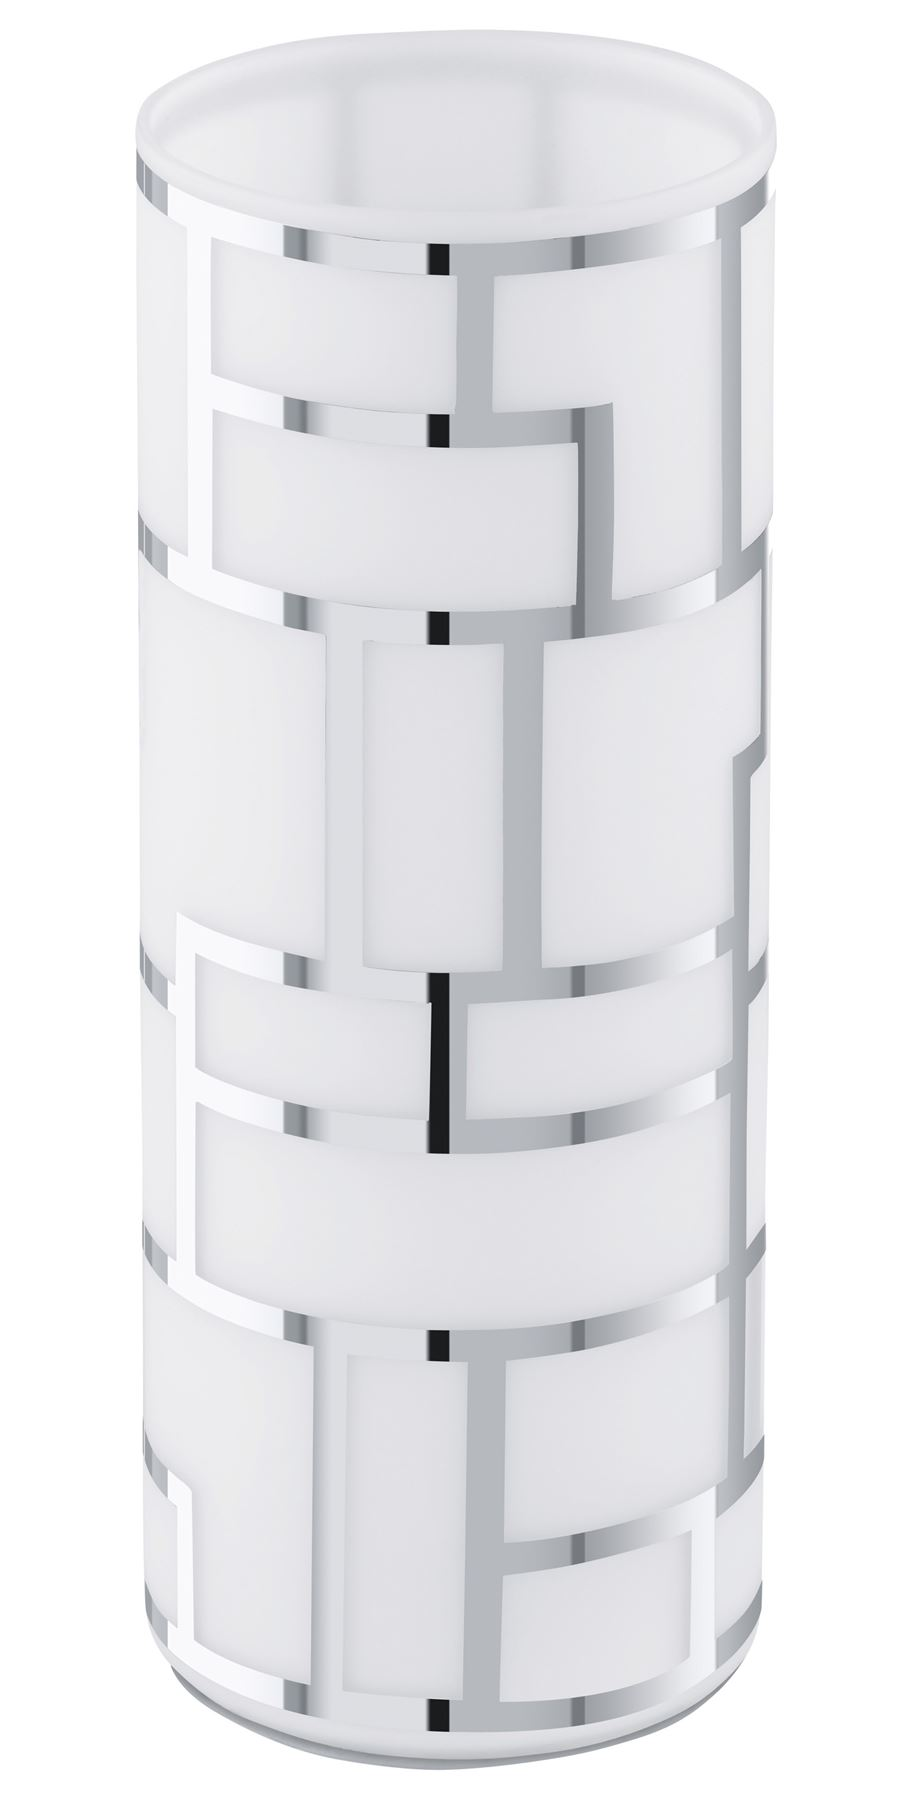 Bayman Table Lamp 1 Light Decorative Glass Shade In White